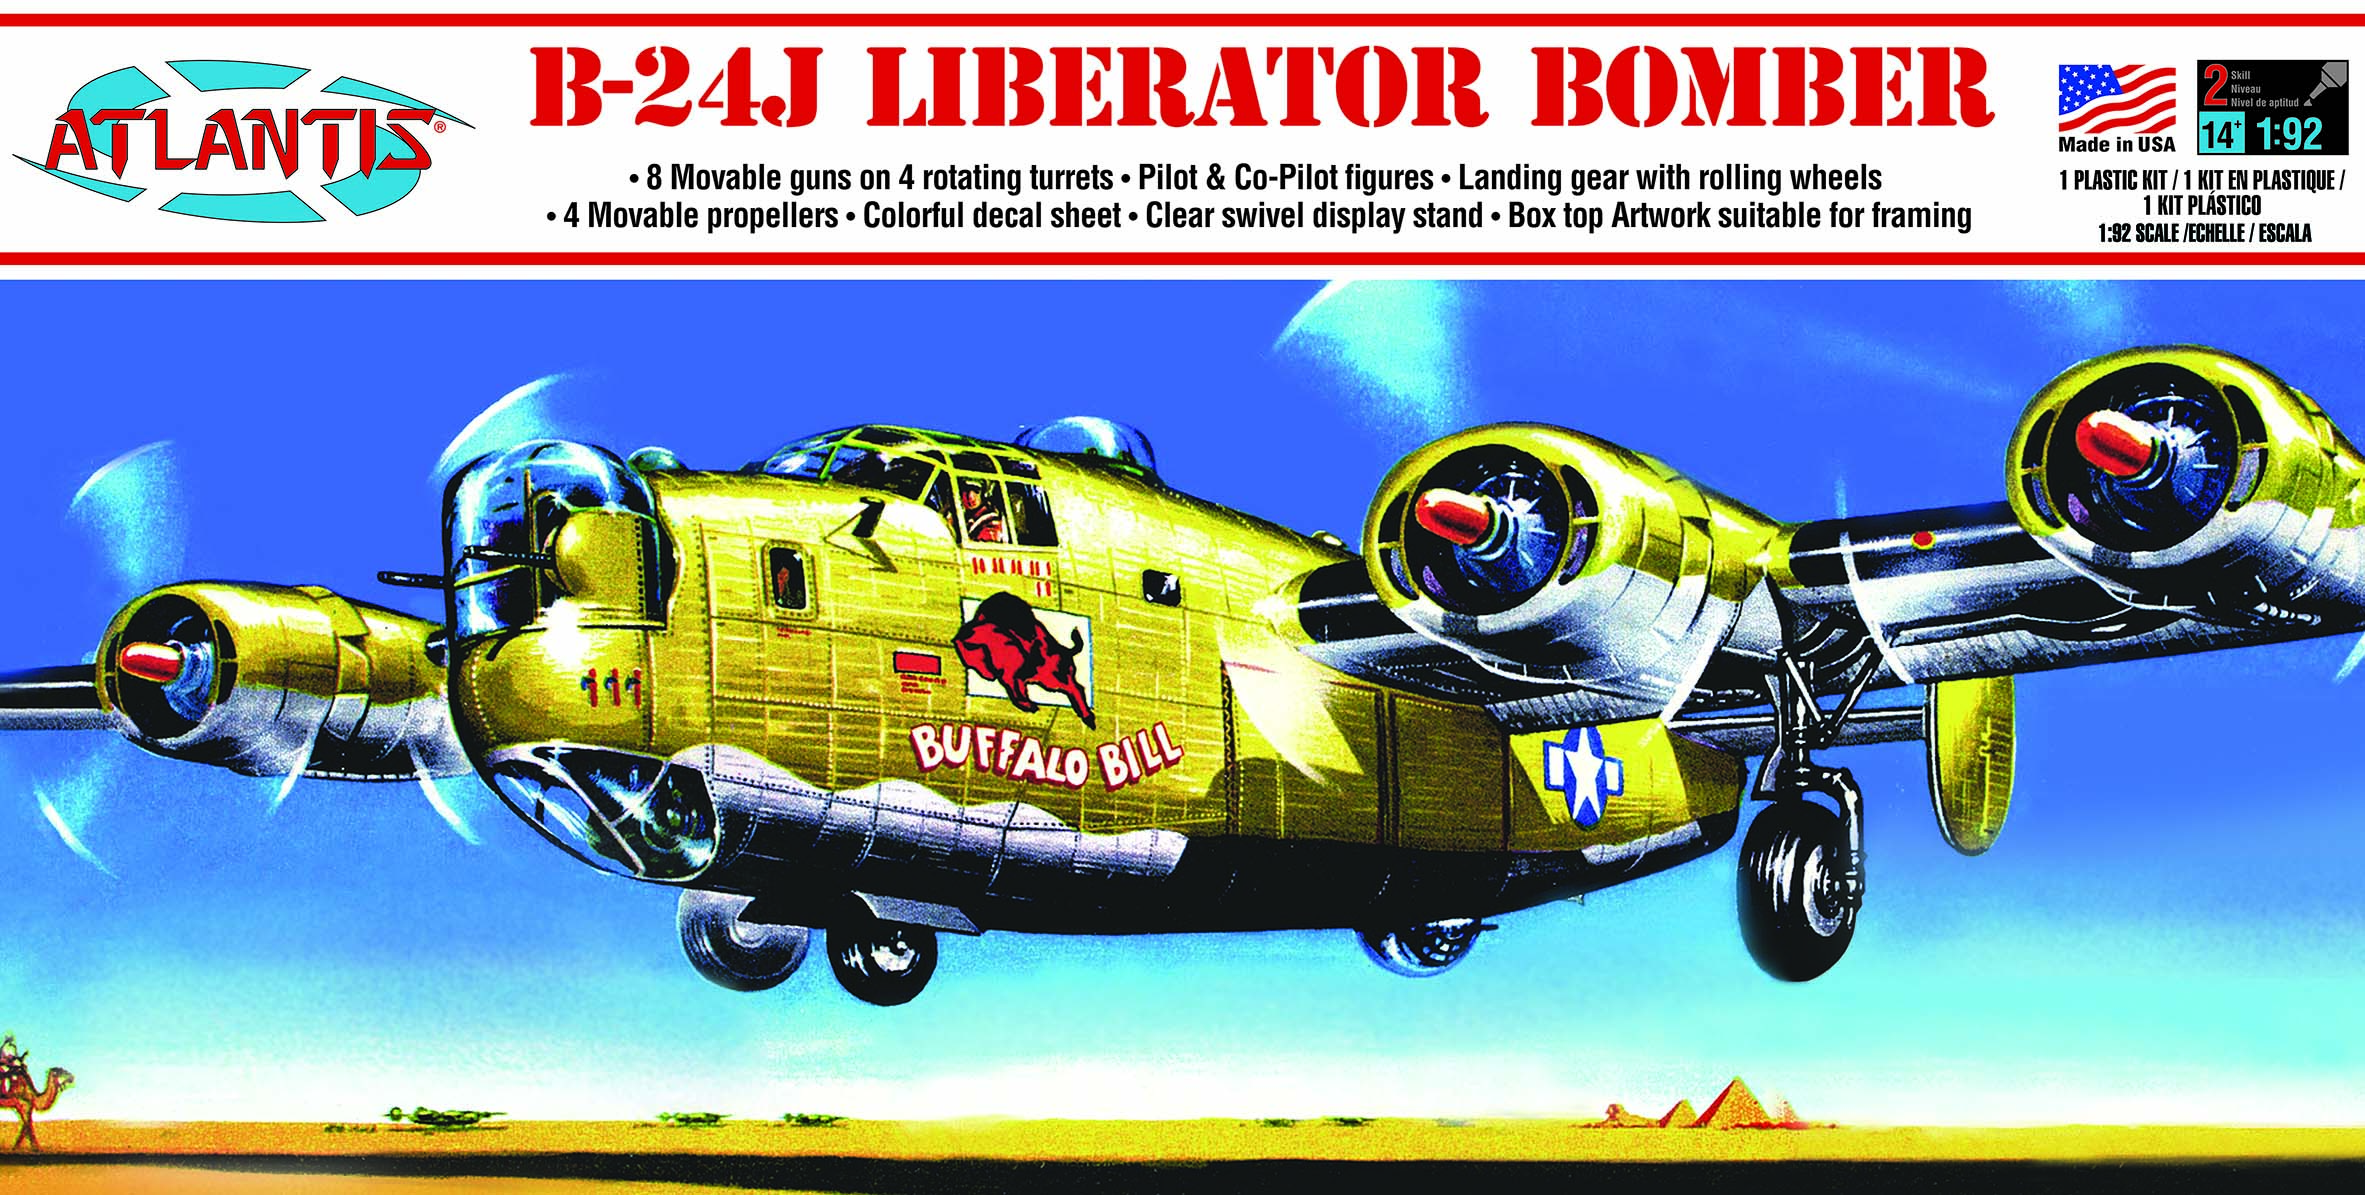 Atlantis B-24J Liberator Buffalo Bill